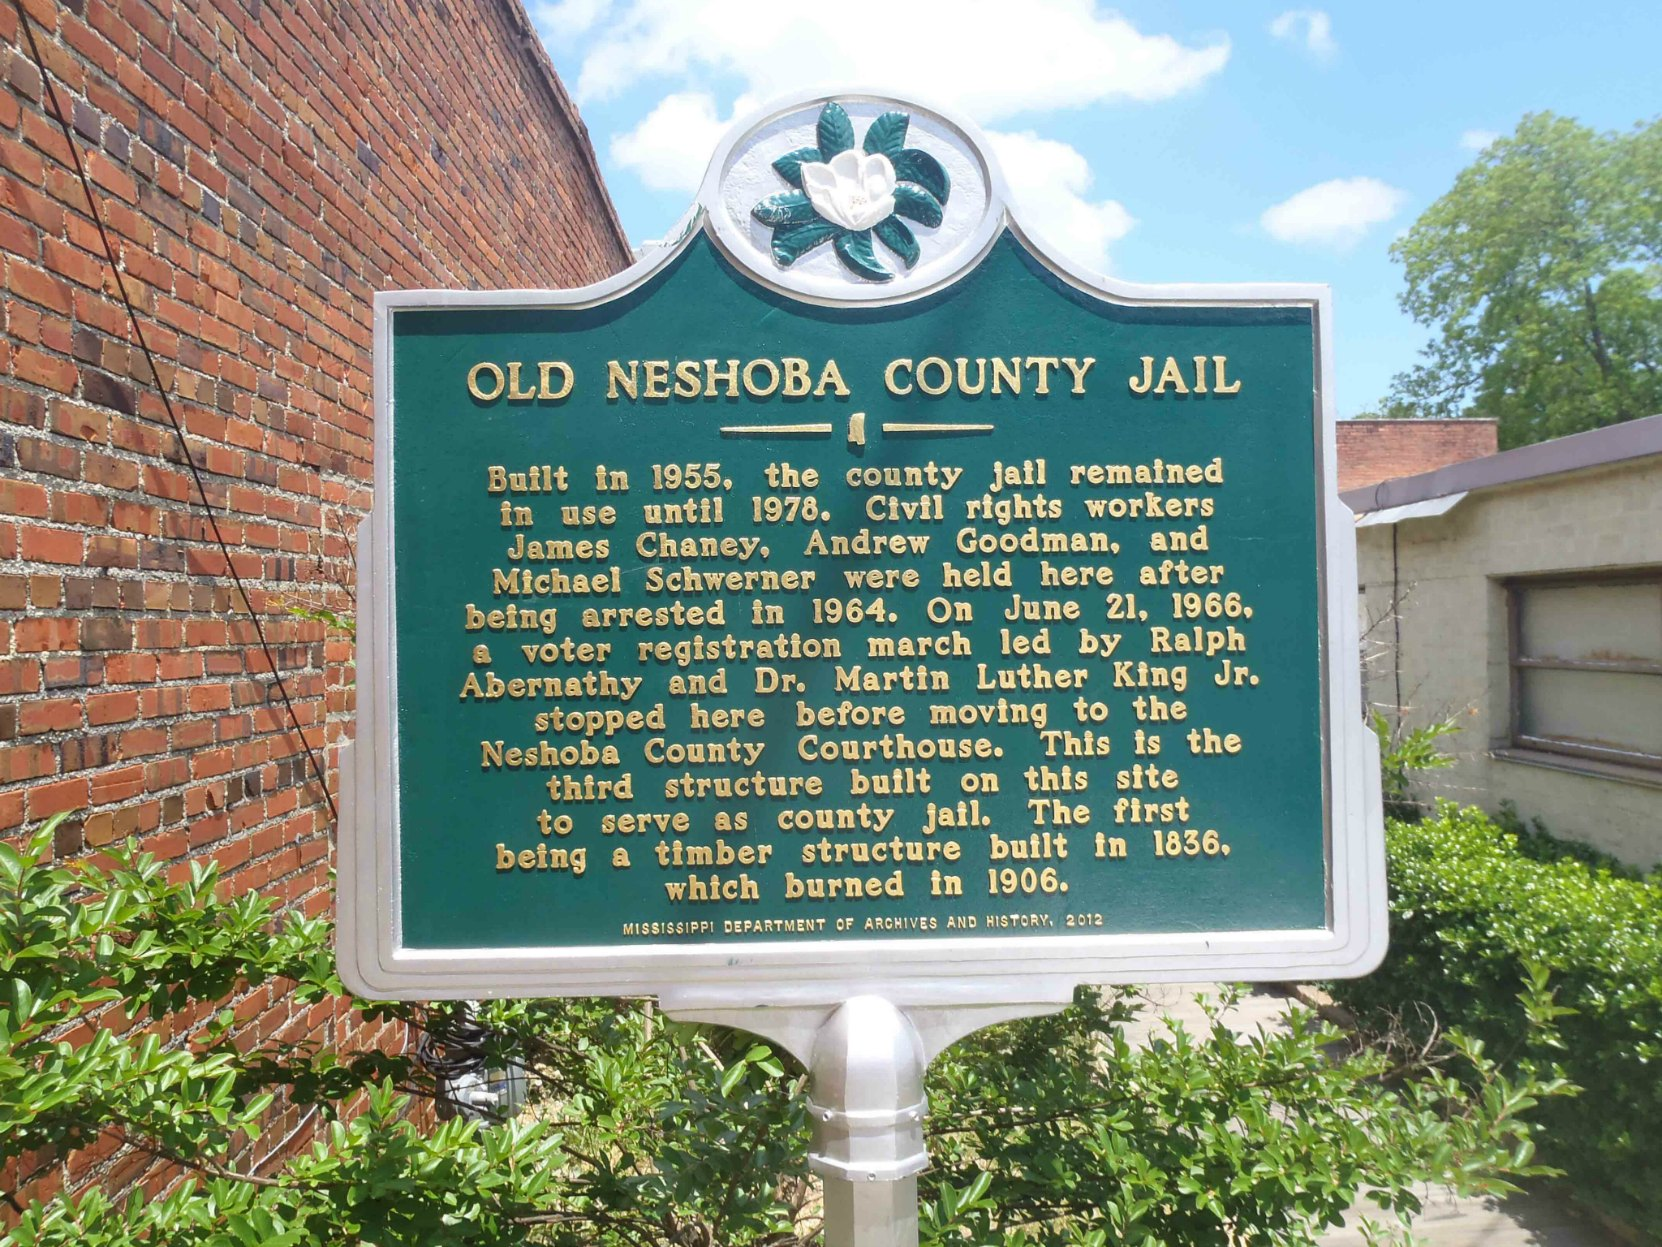 Mississippi Department of Archives & History marker for Old Neshoba County Jail, Philadelphia, Neshoba County, Mississippi.